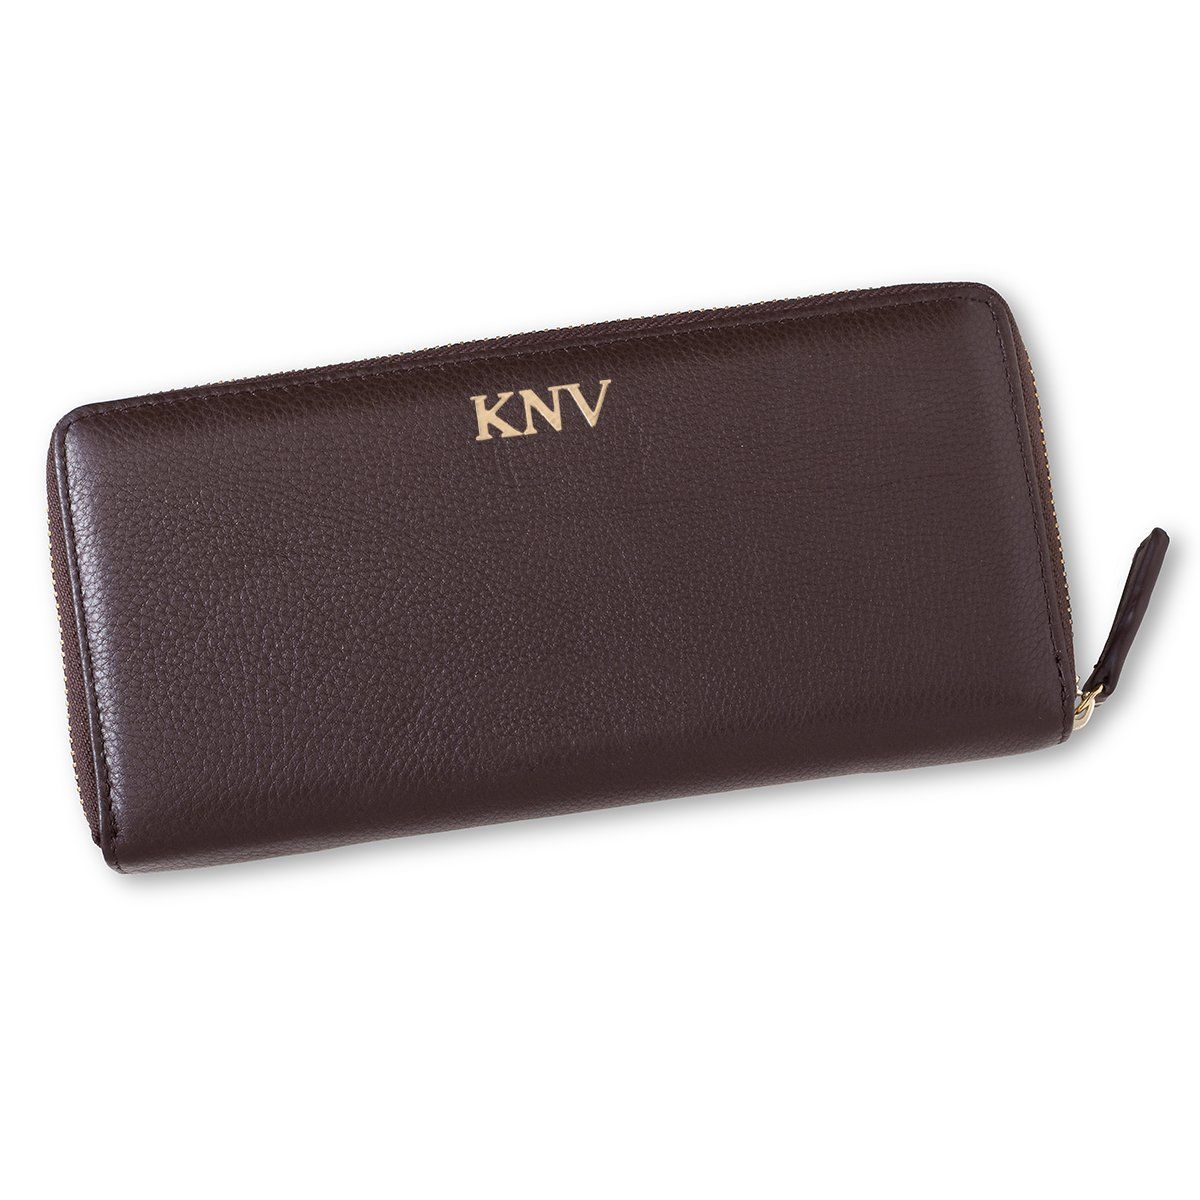 Personalized-Womens-Brown-Borello-Leather-Zip-Wallet